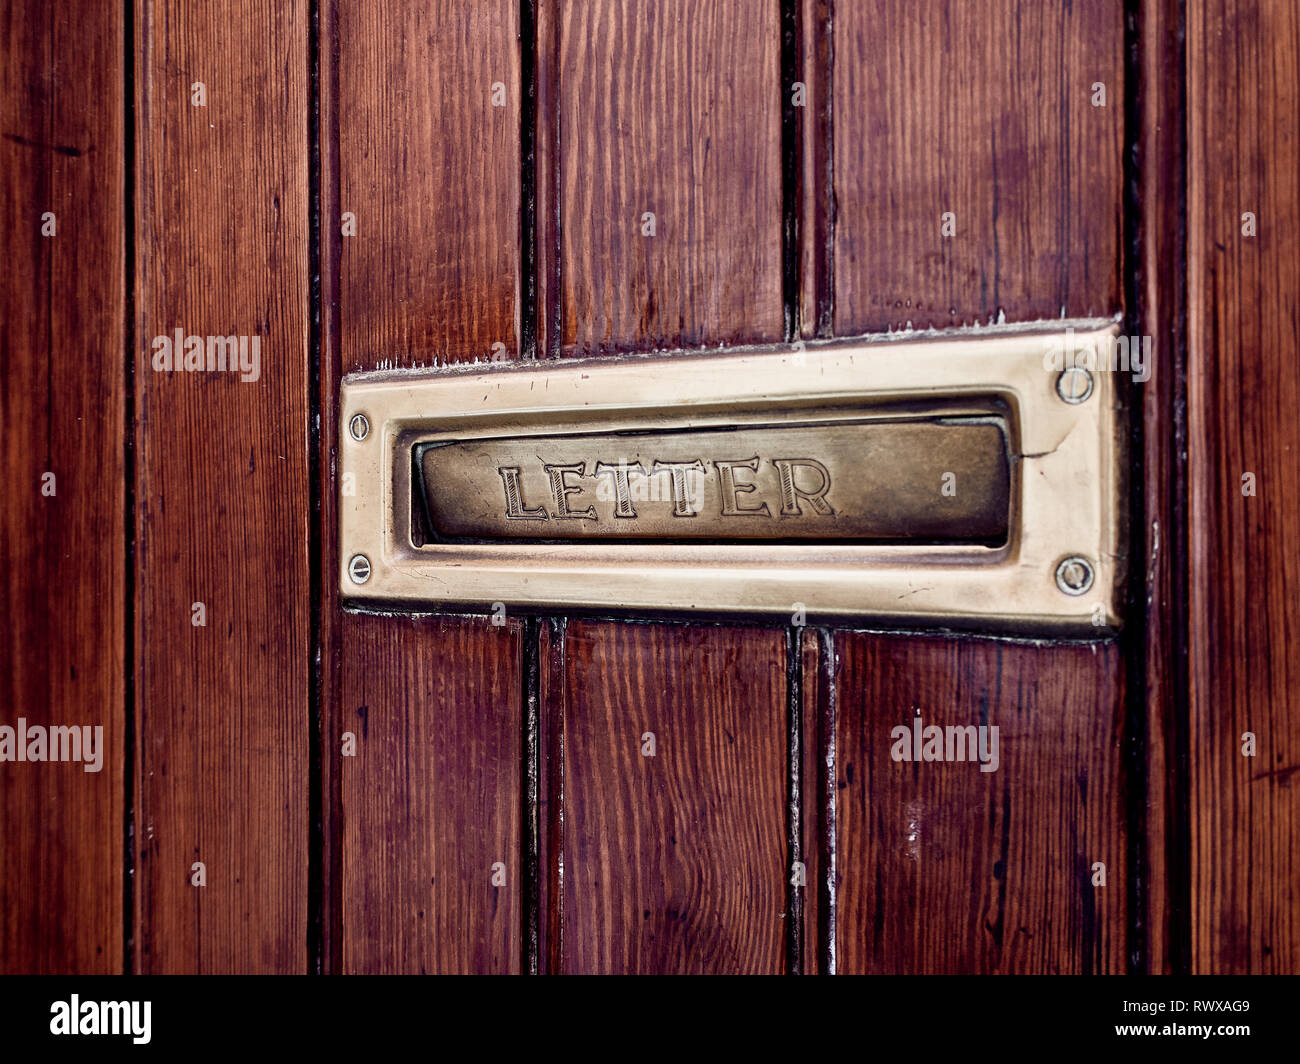 Mail letter box contained on a wooden doors with gold details - Stock Image